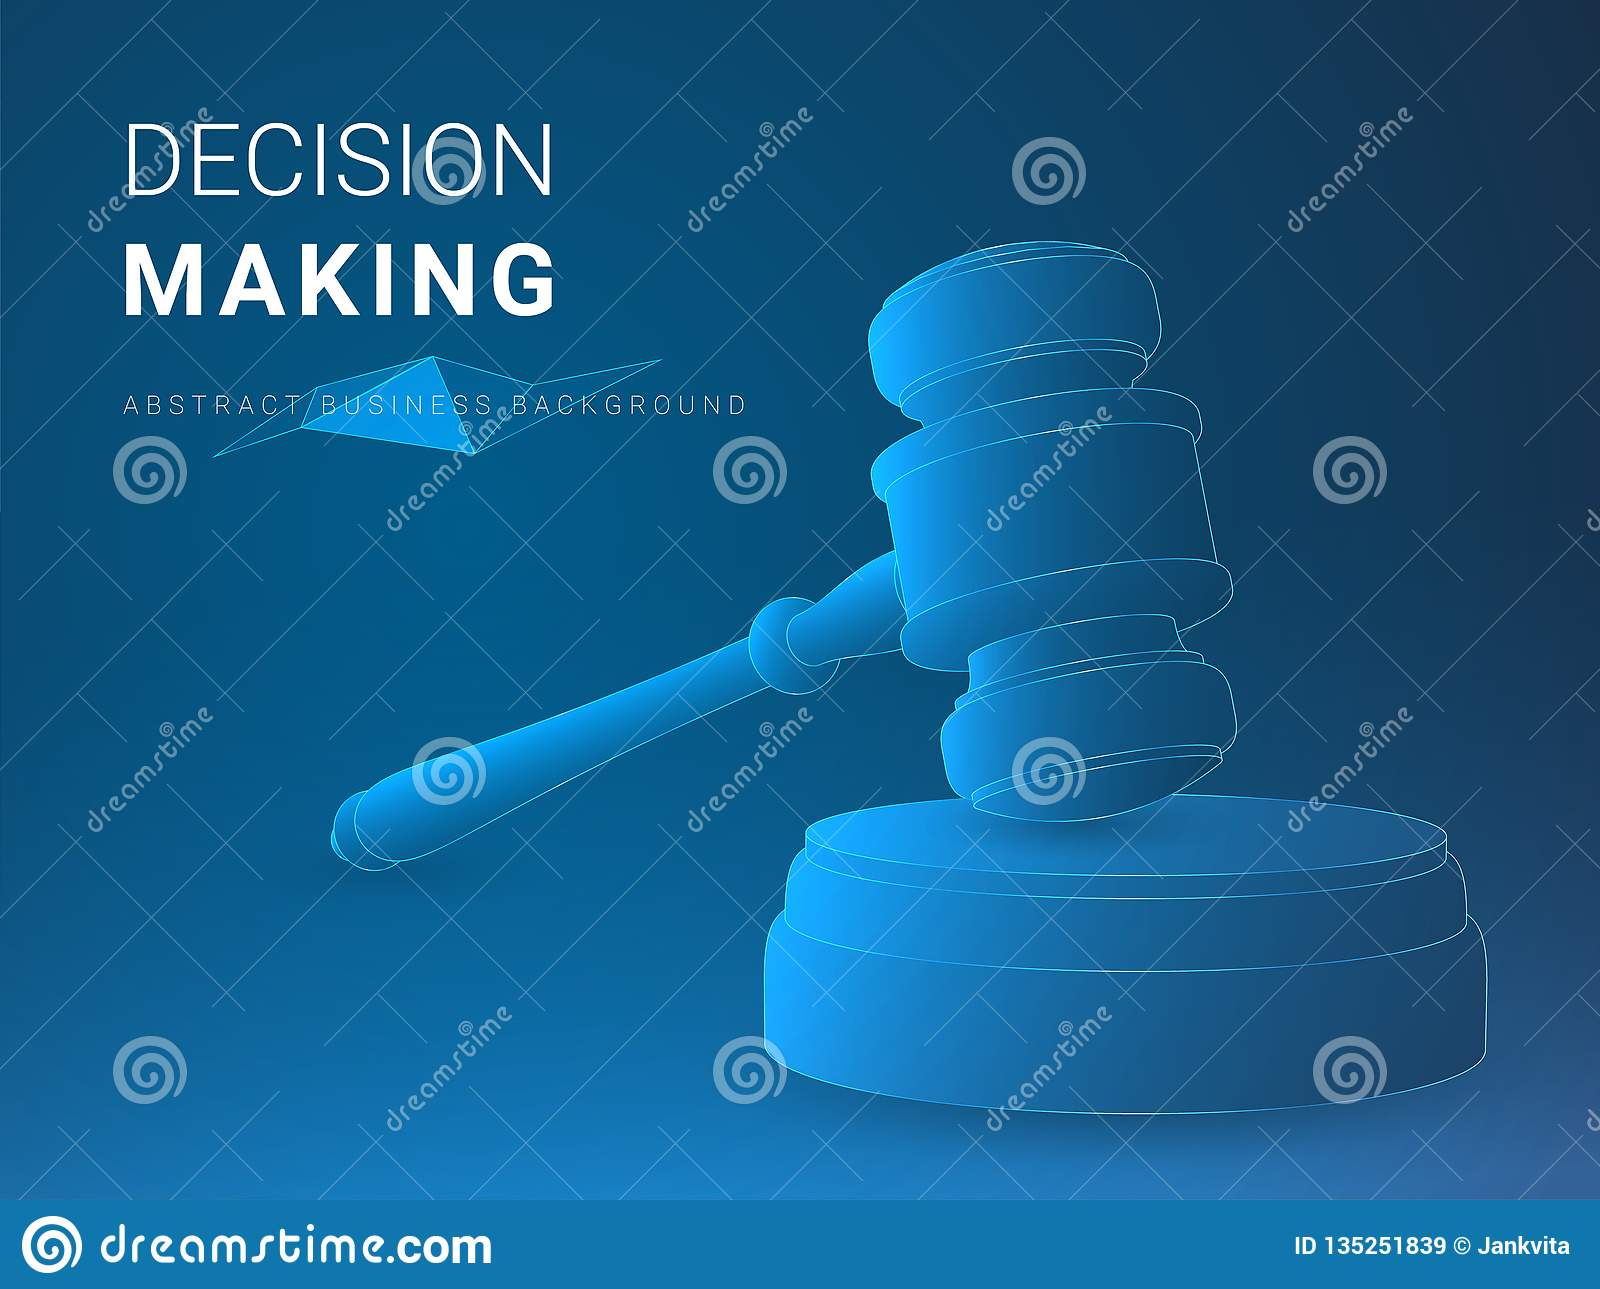 Abstract modern business background vector depicting decision making in shape of a jury hammer on blue background